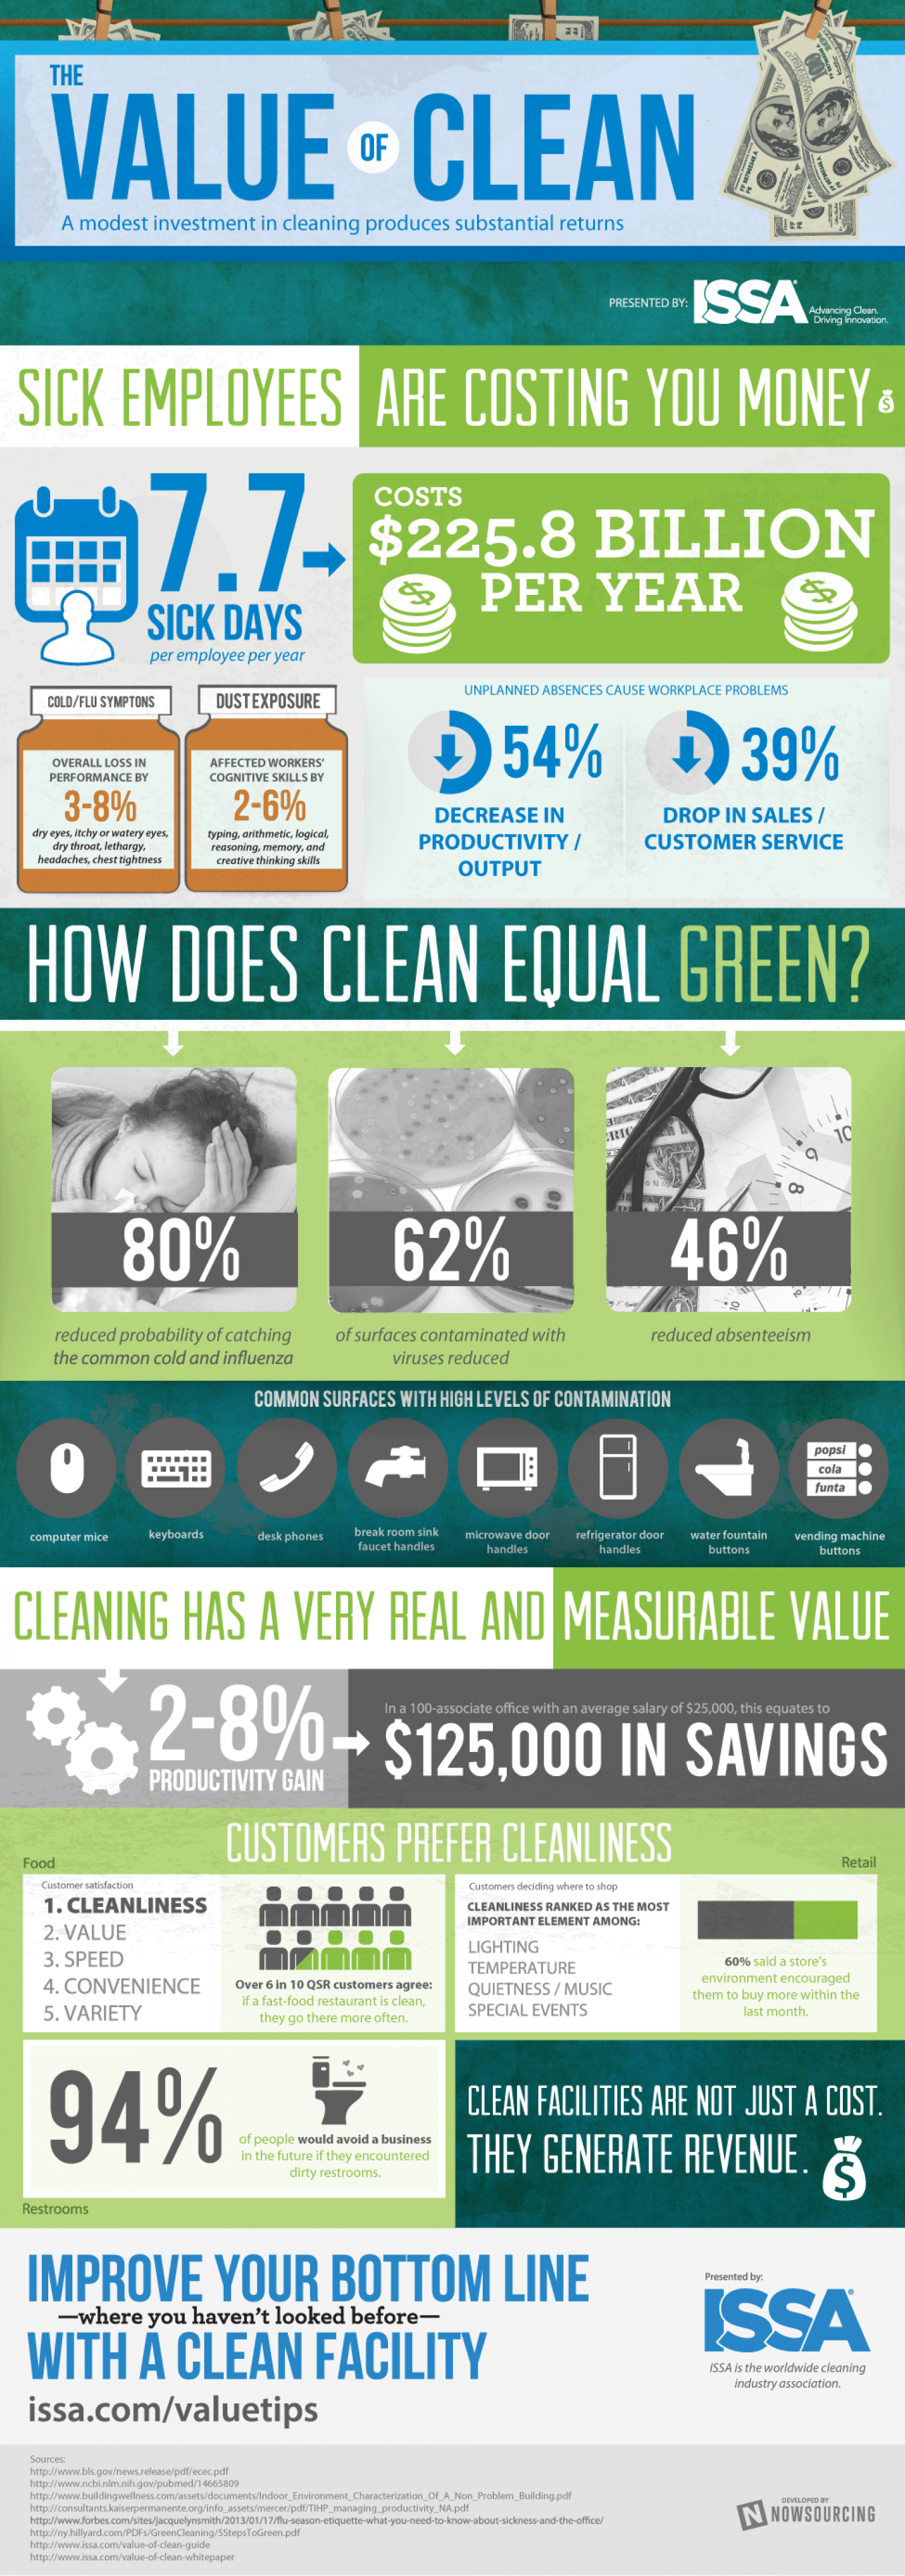 The Value of Clean Infographic